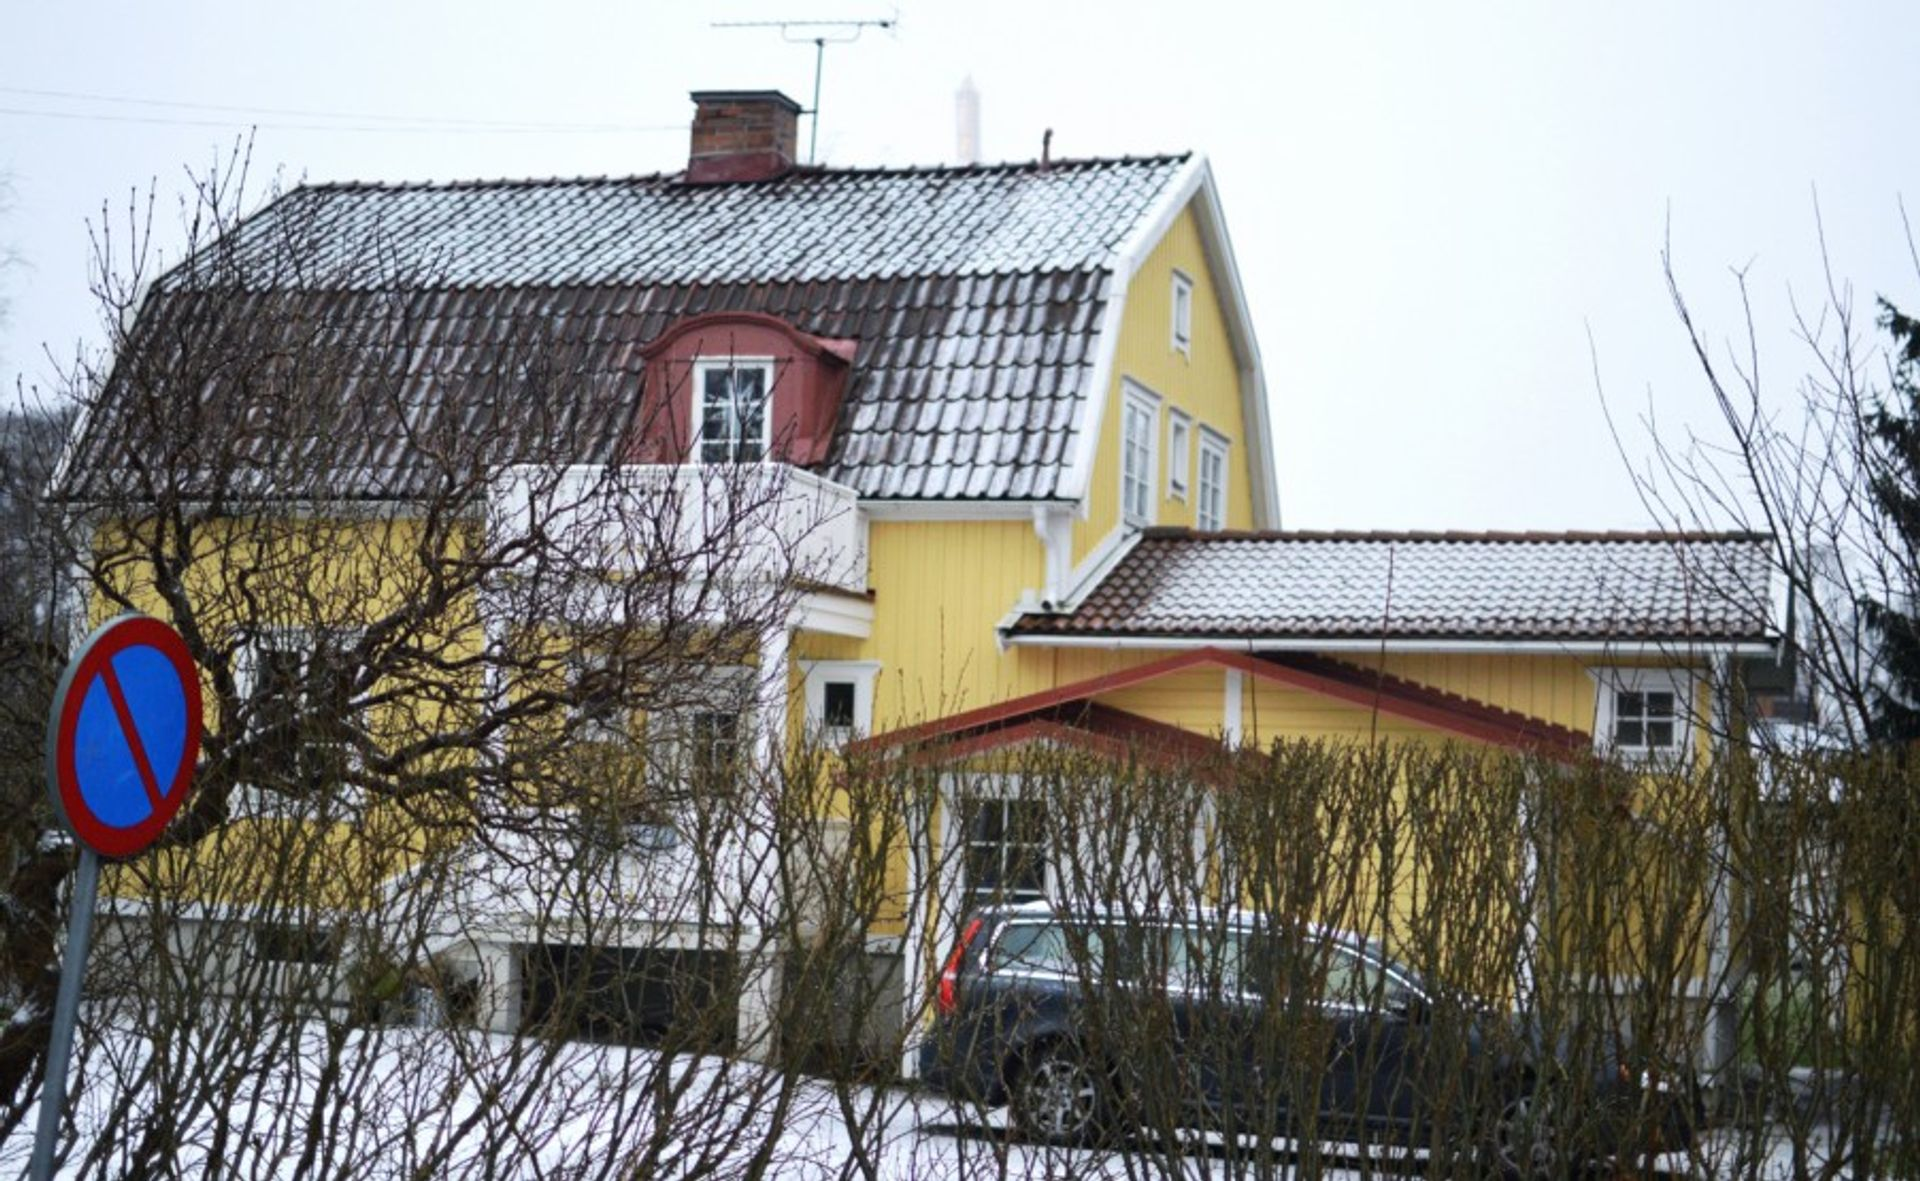 A yellow house.